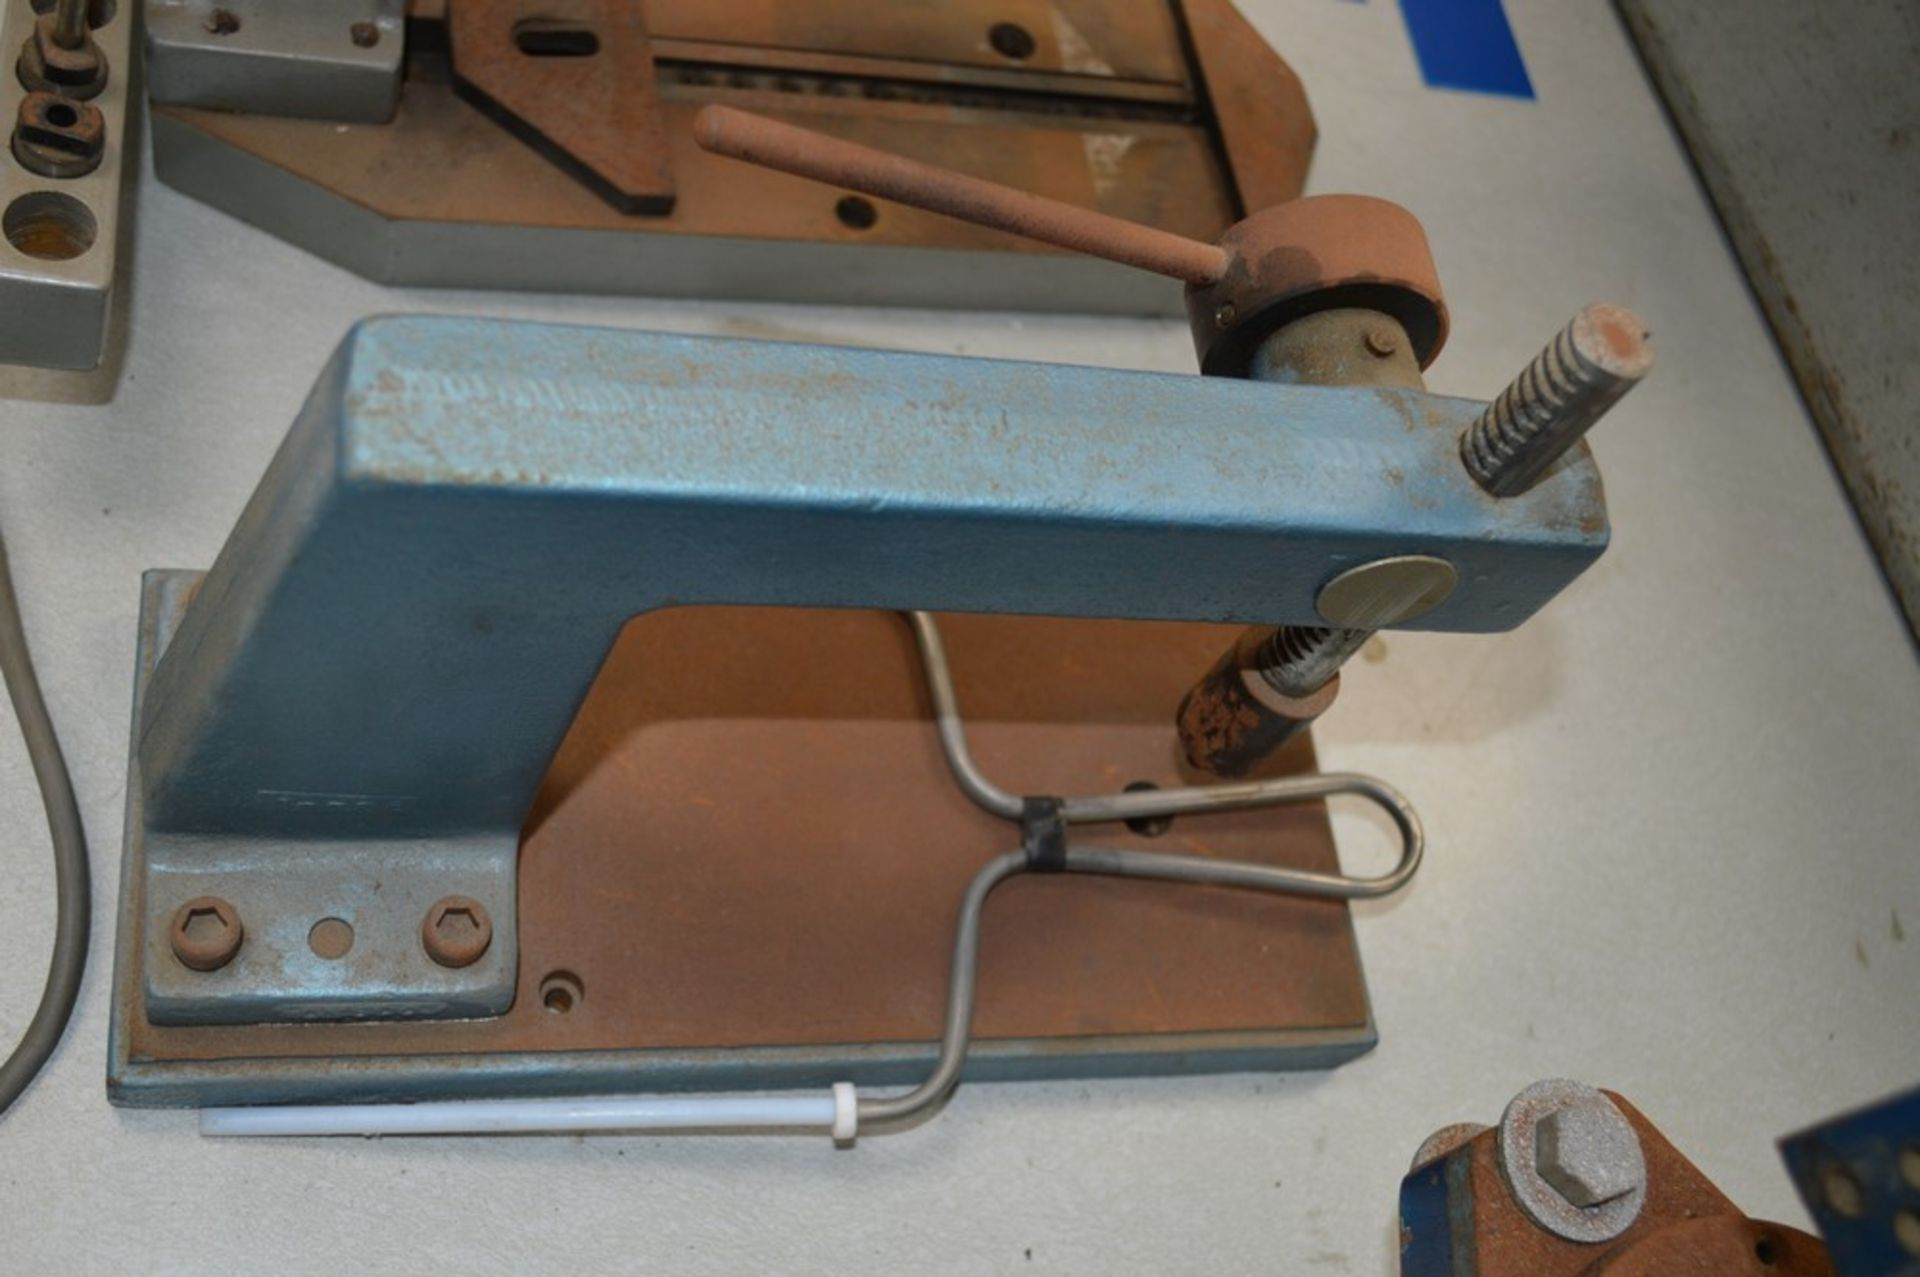 Roper Whitney Model 118 4 Ton Punch, hand tapping machine with dies, small instertion press - Image 3 of 5